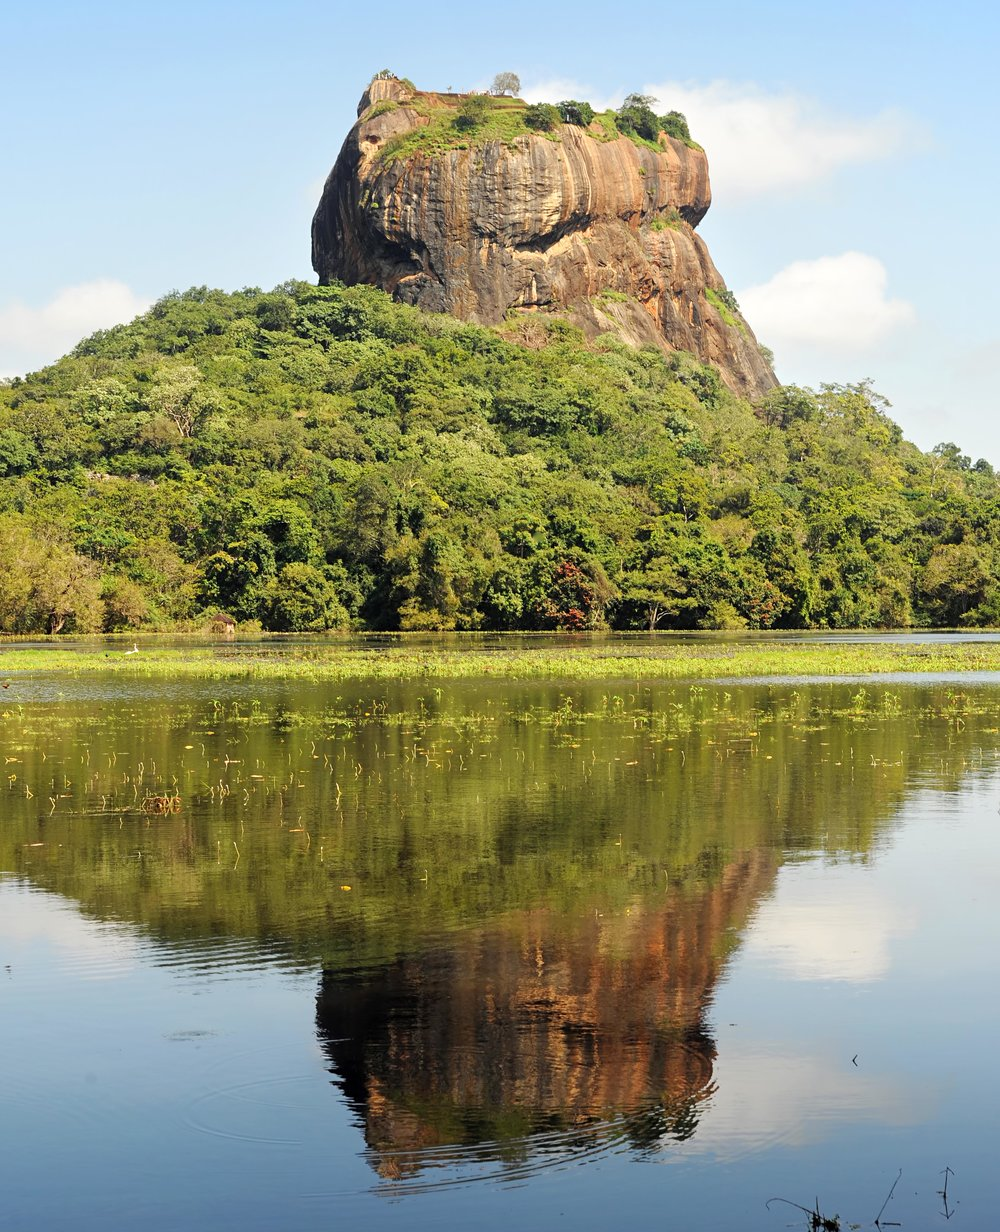 invite-to-paradise-sri-lanka-holiday-honeymoon-sigiriya-rock-fortress-pidurangala-view.jpg